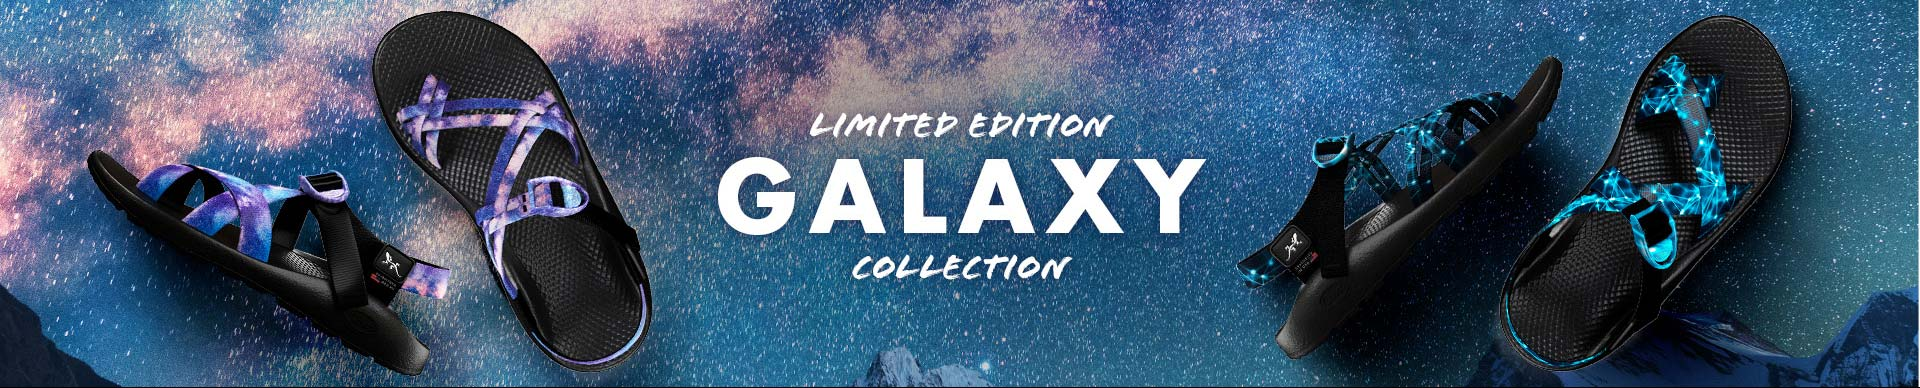 Limited Edition Galaxy Collection